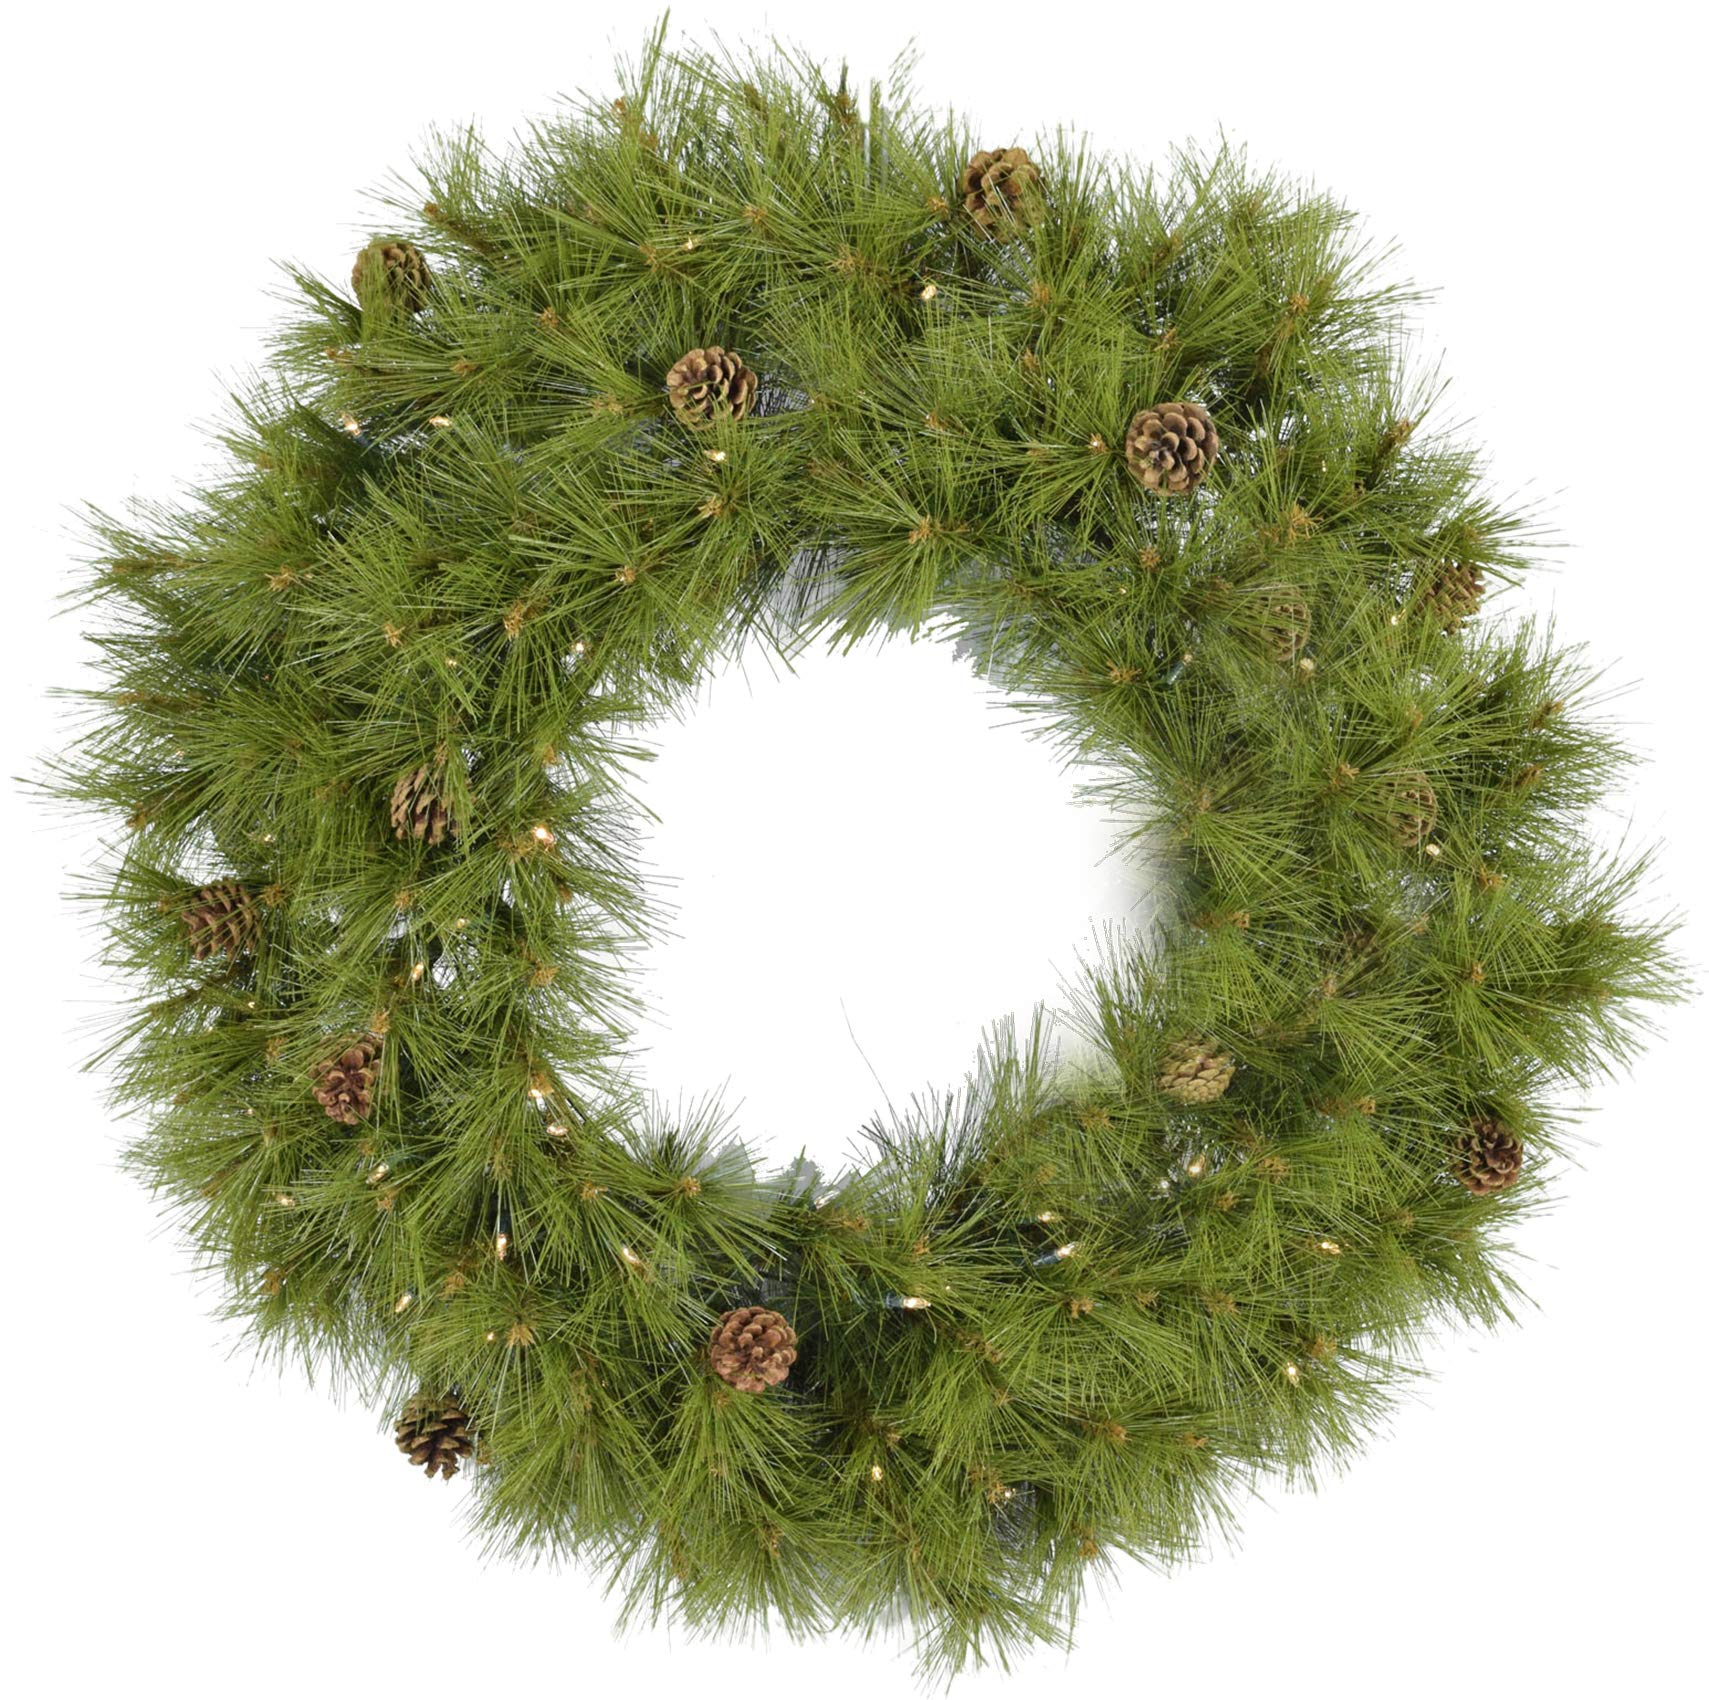 Fraser Hill Farm 36-in. Eastern Pine Artificial Holiday Wreath with Clear Battery-Operated LED String Lights, FFEP036W-5GRB Christmas Decoration, Green